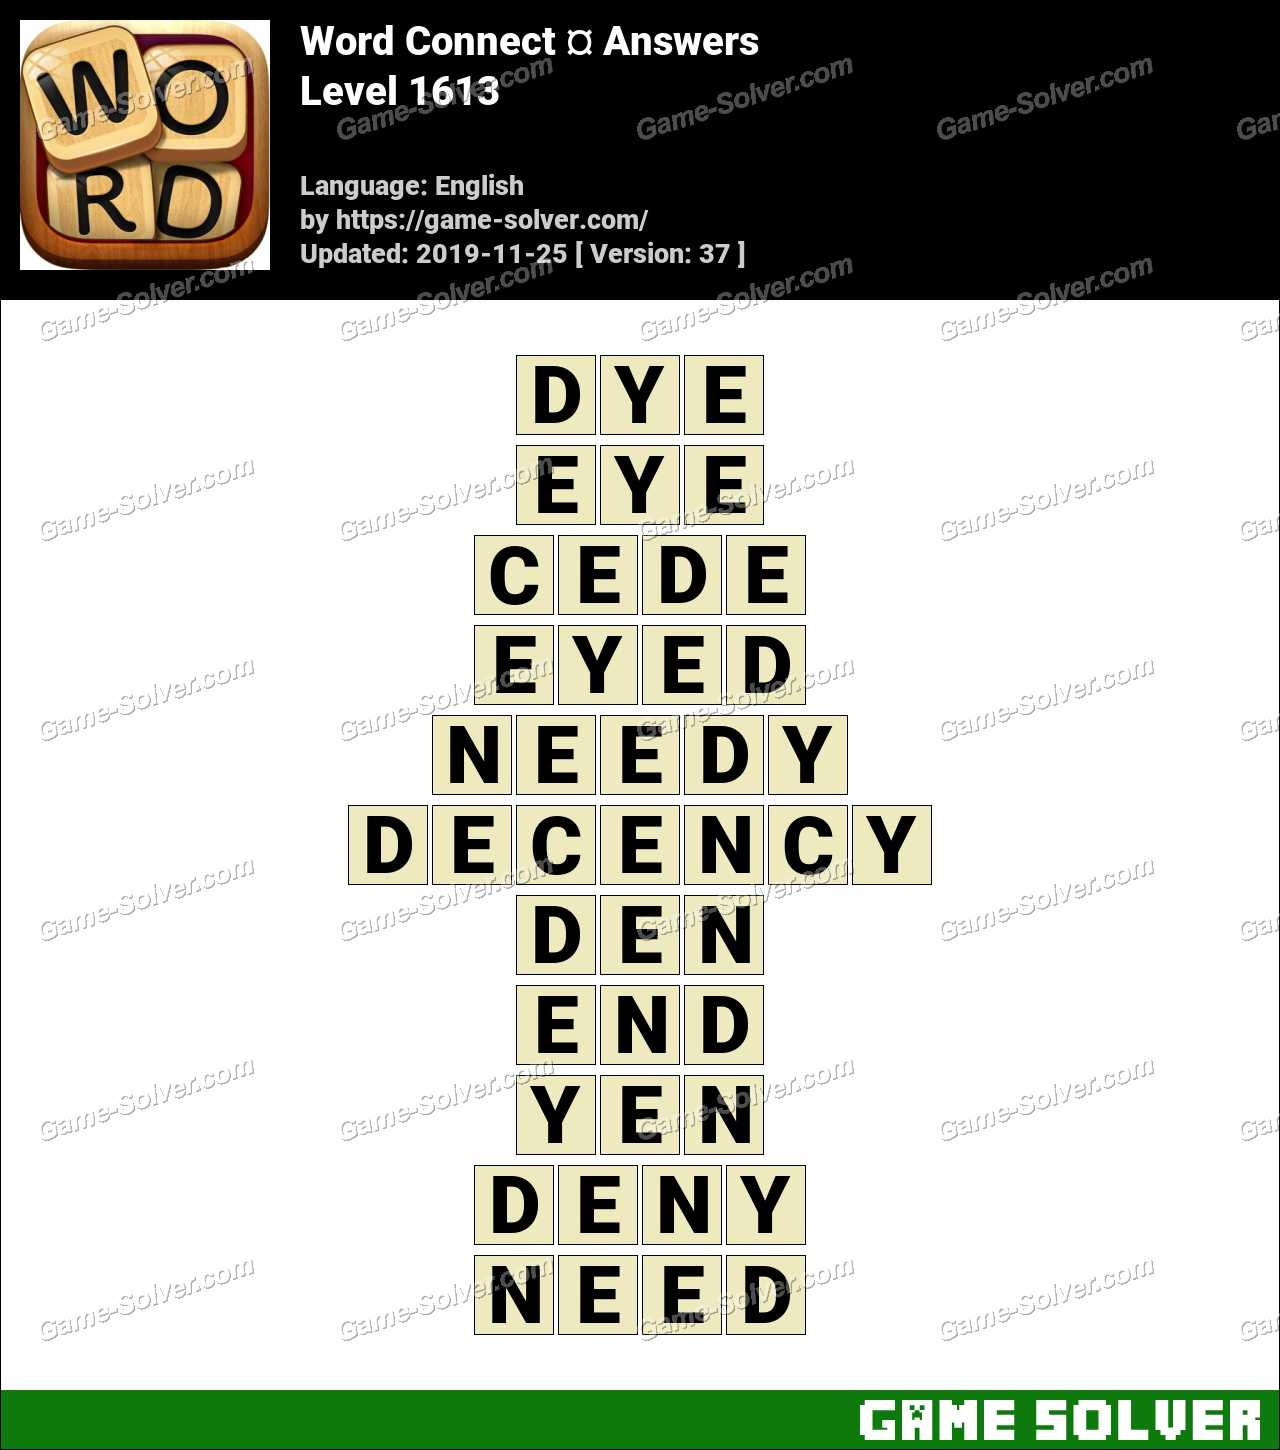 Word Connect Level 1613 Answers